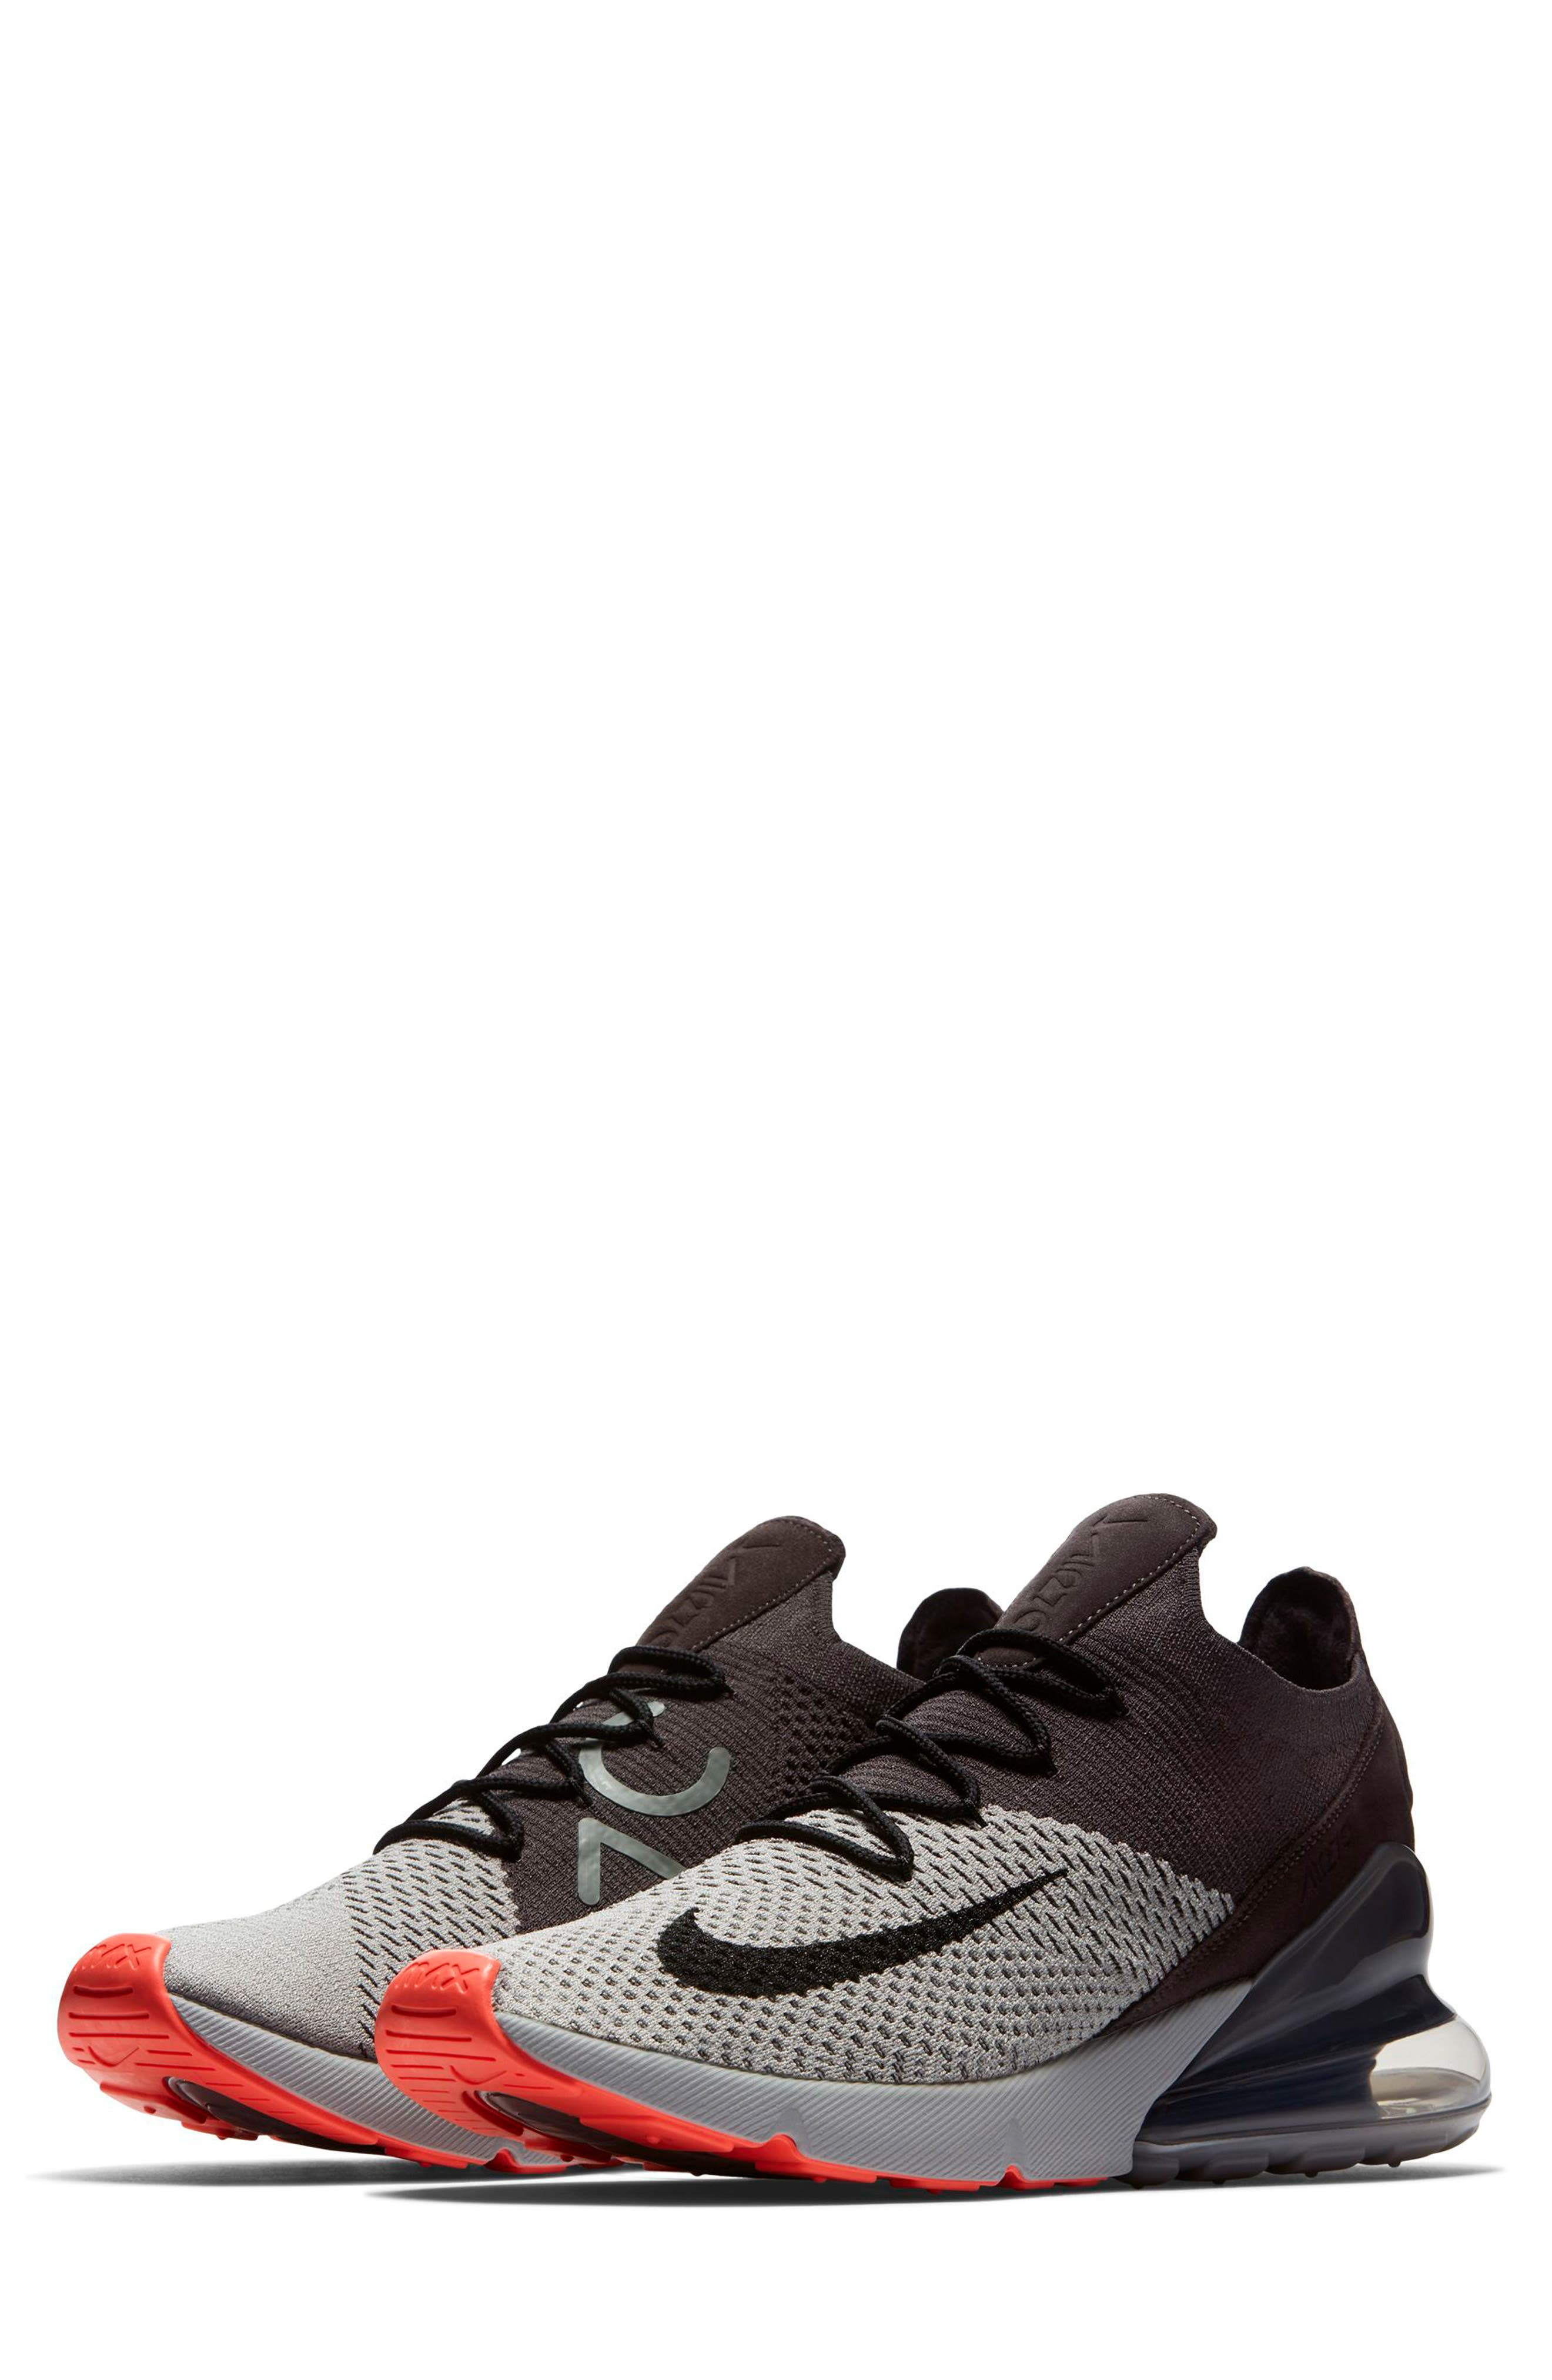 a9a15a60129 ... coupon code for air max 270 flyknit sneaker main ad3ca 9a1a0